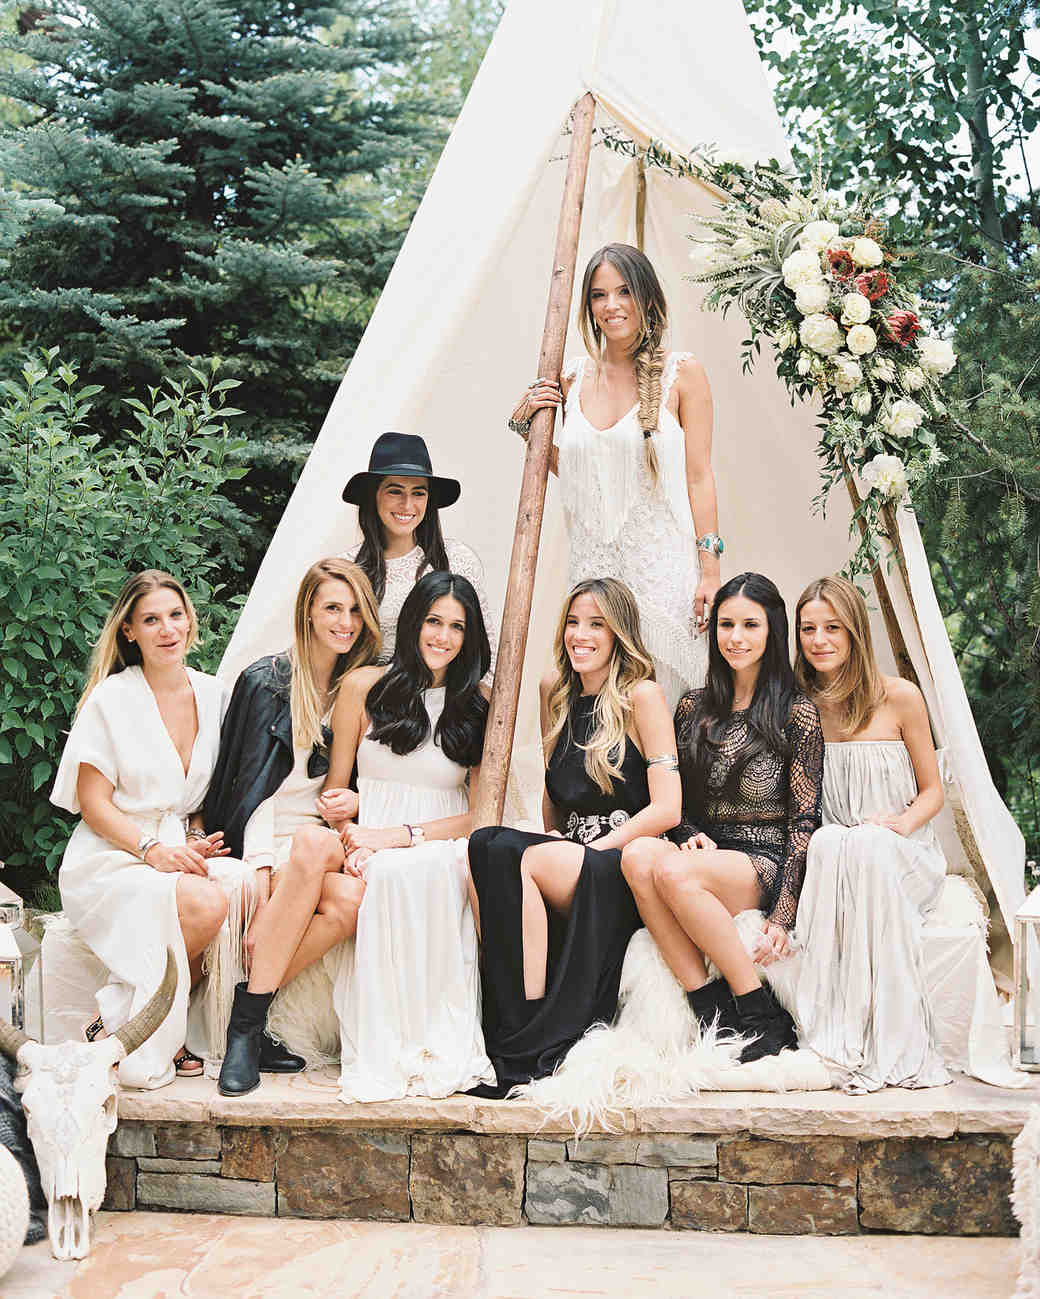 Bachelorette party before the wedding: how to say goodbye to an unmarried life 95